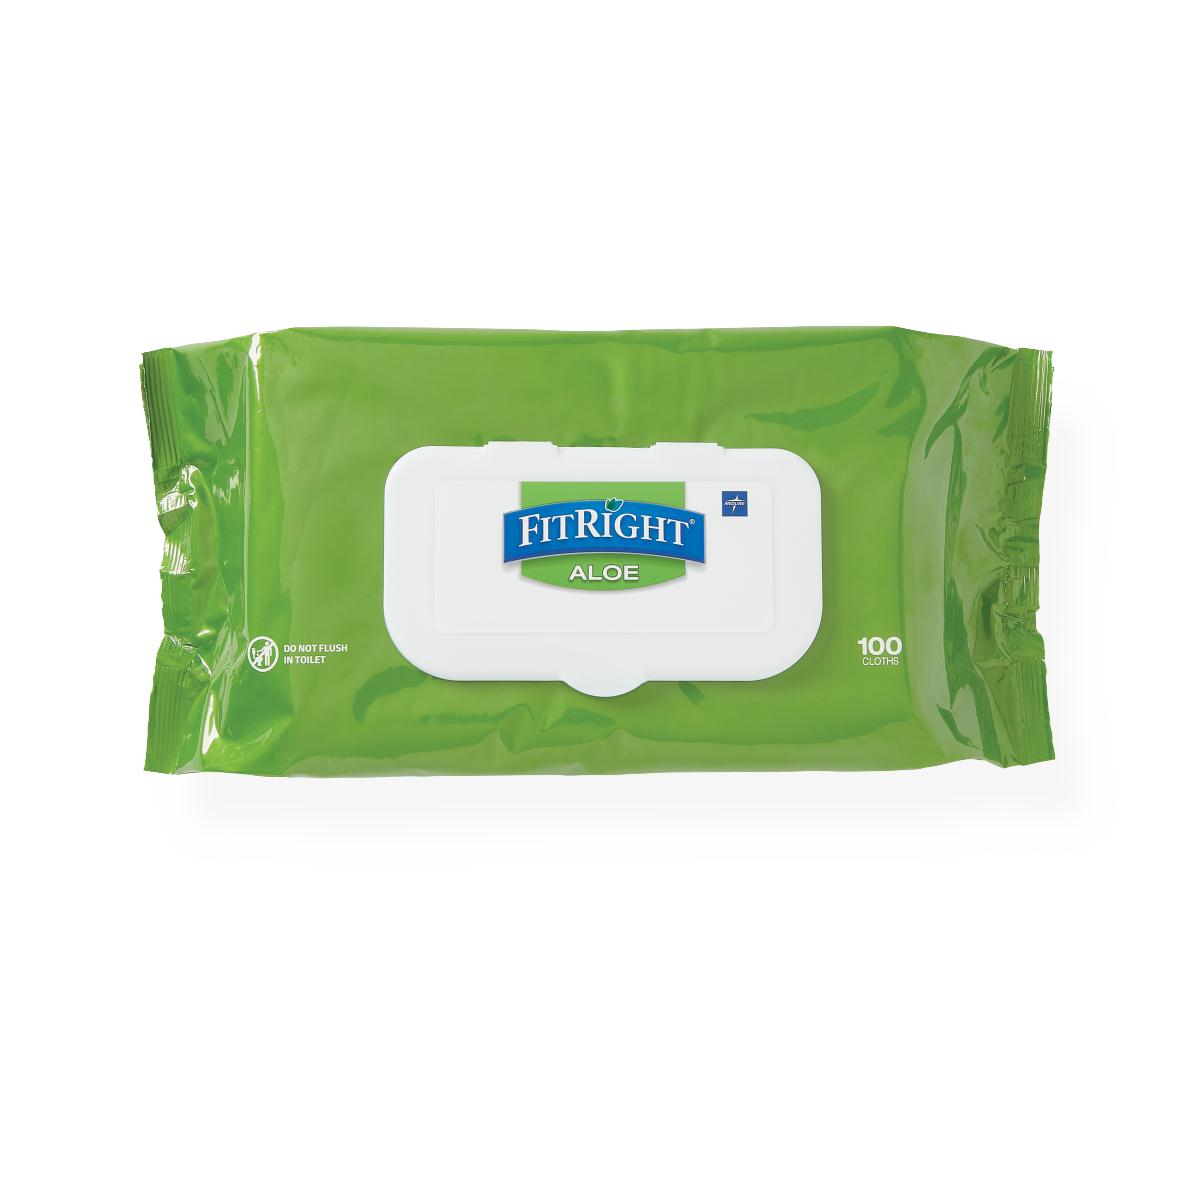 FitRight Aloe Personal Cleansing Wipes